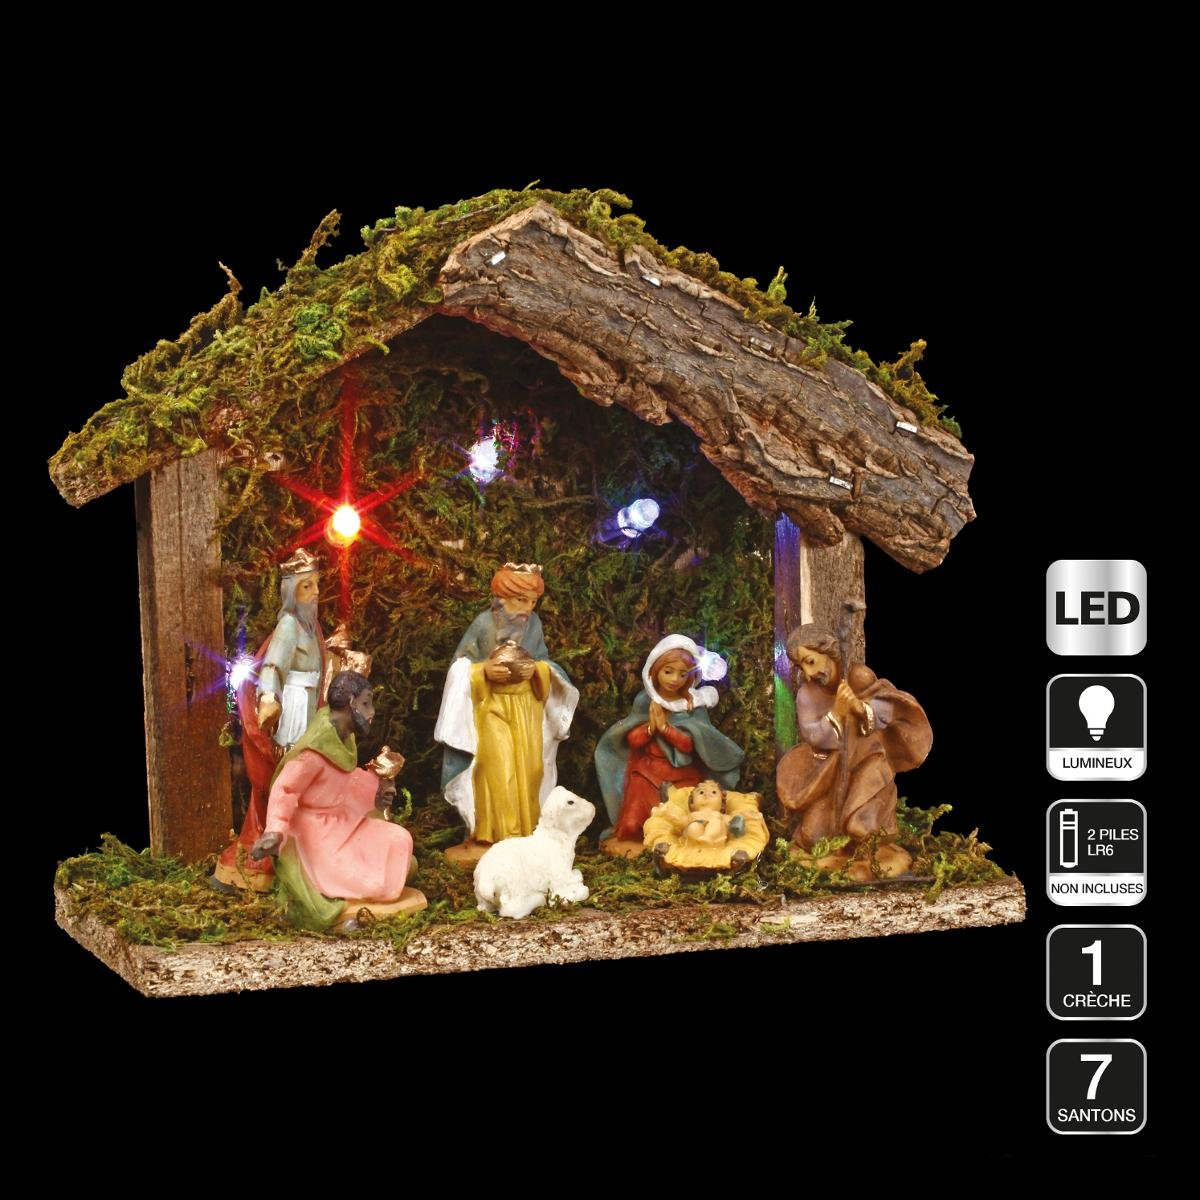 3 in 1 Christmas decoration : 1 Nativity scene + 7 figurines + LED lighting